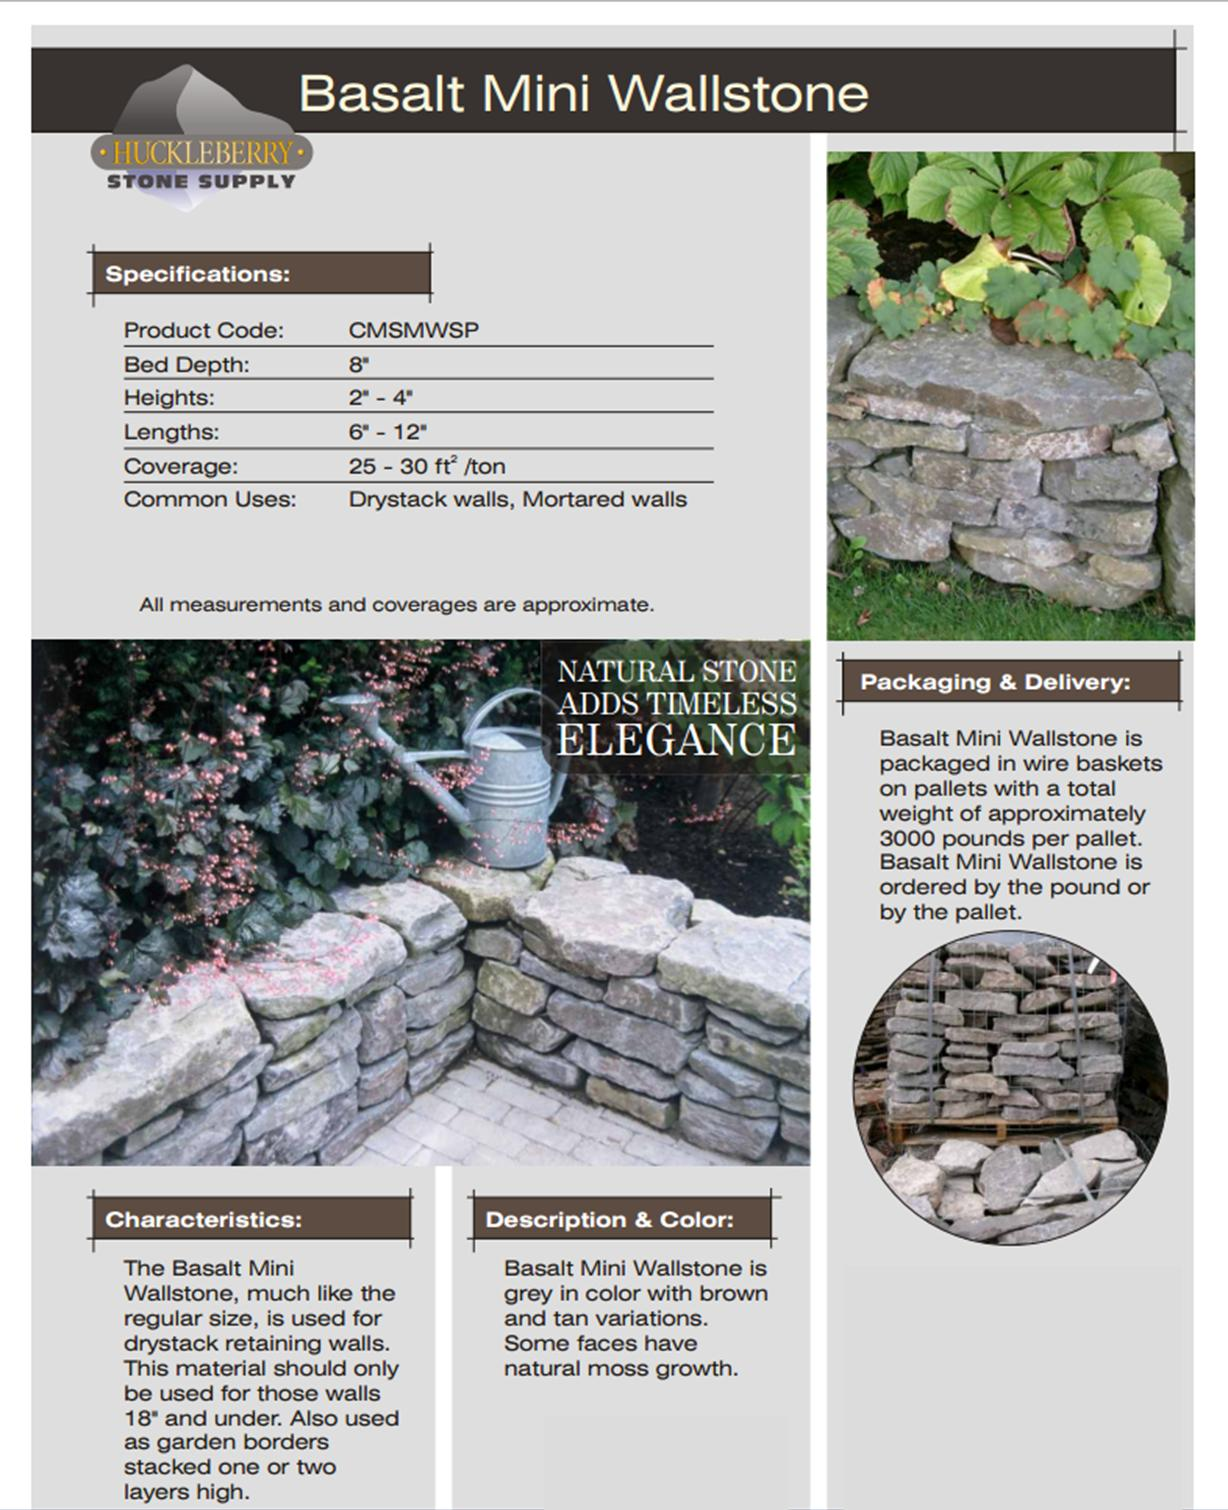 Huckleberry Mini Wallstone spec sheet